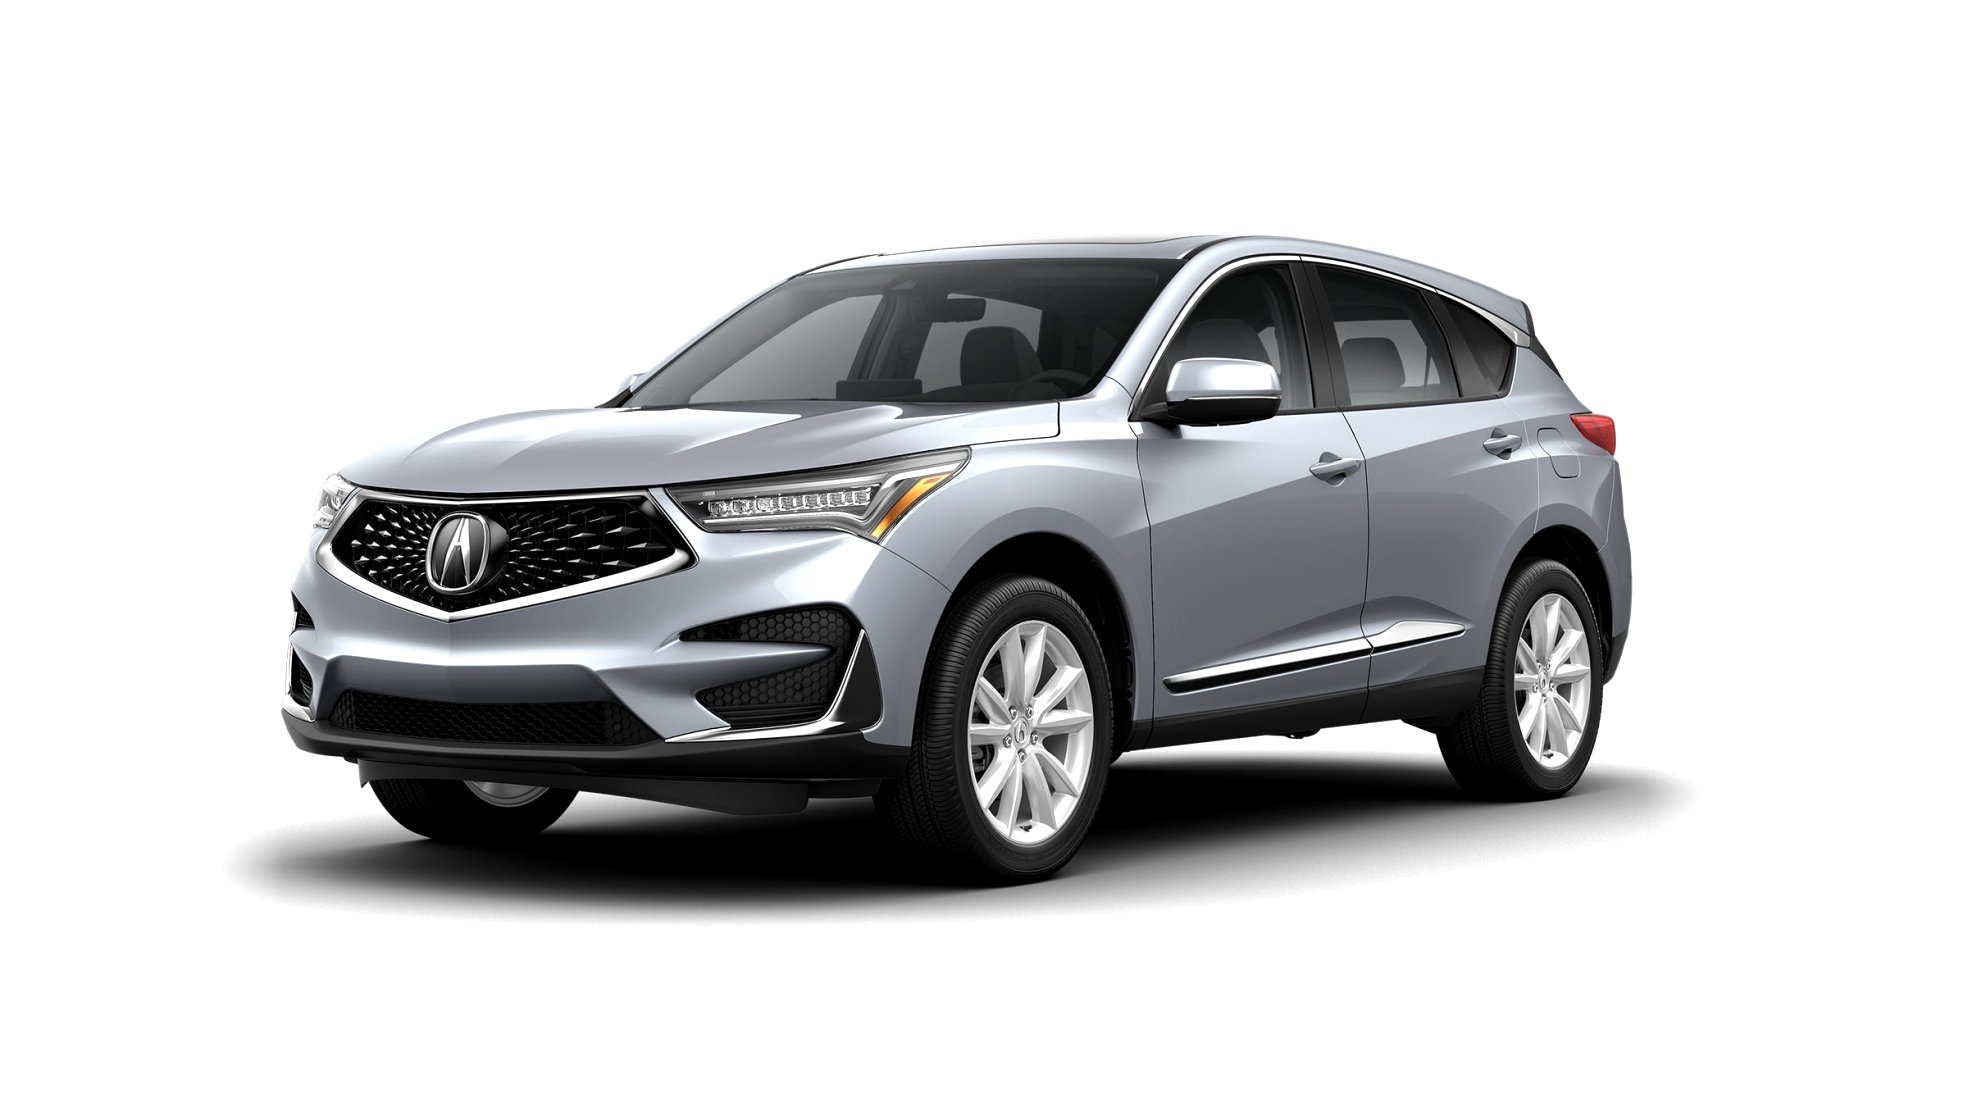 acura black friday deals 2020 Redesign and Review